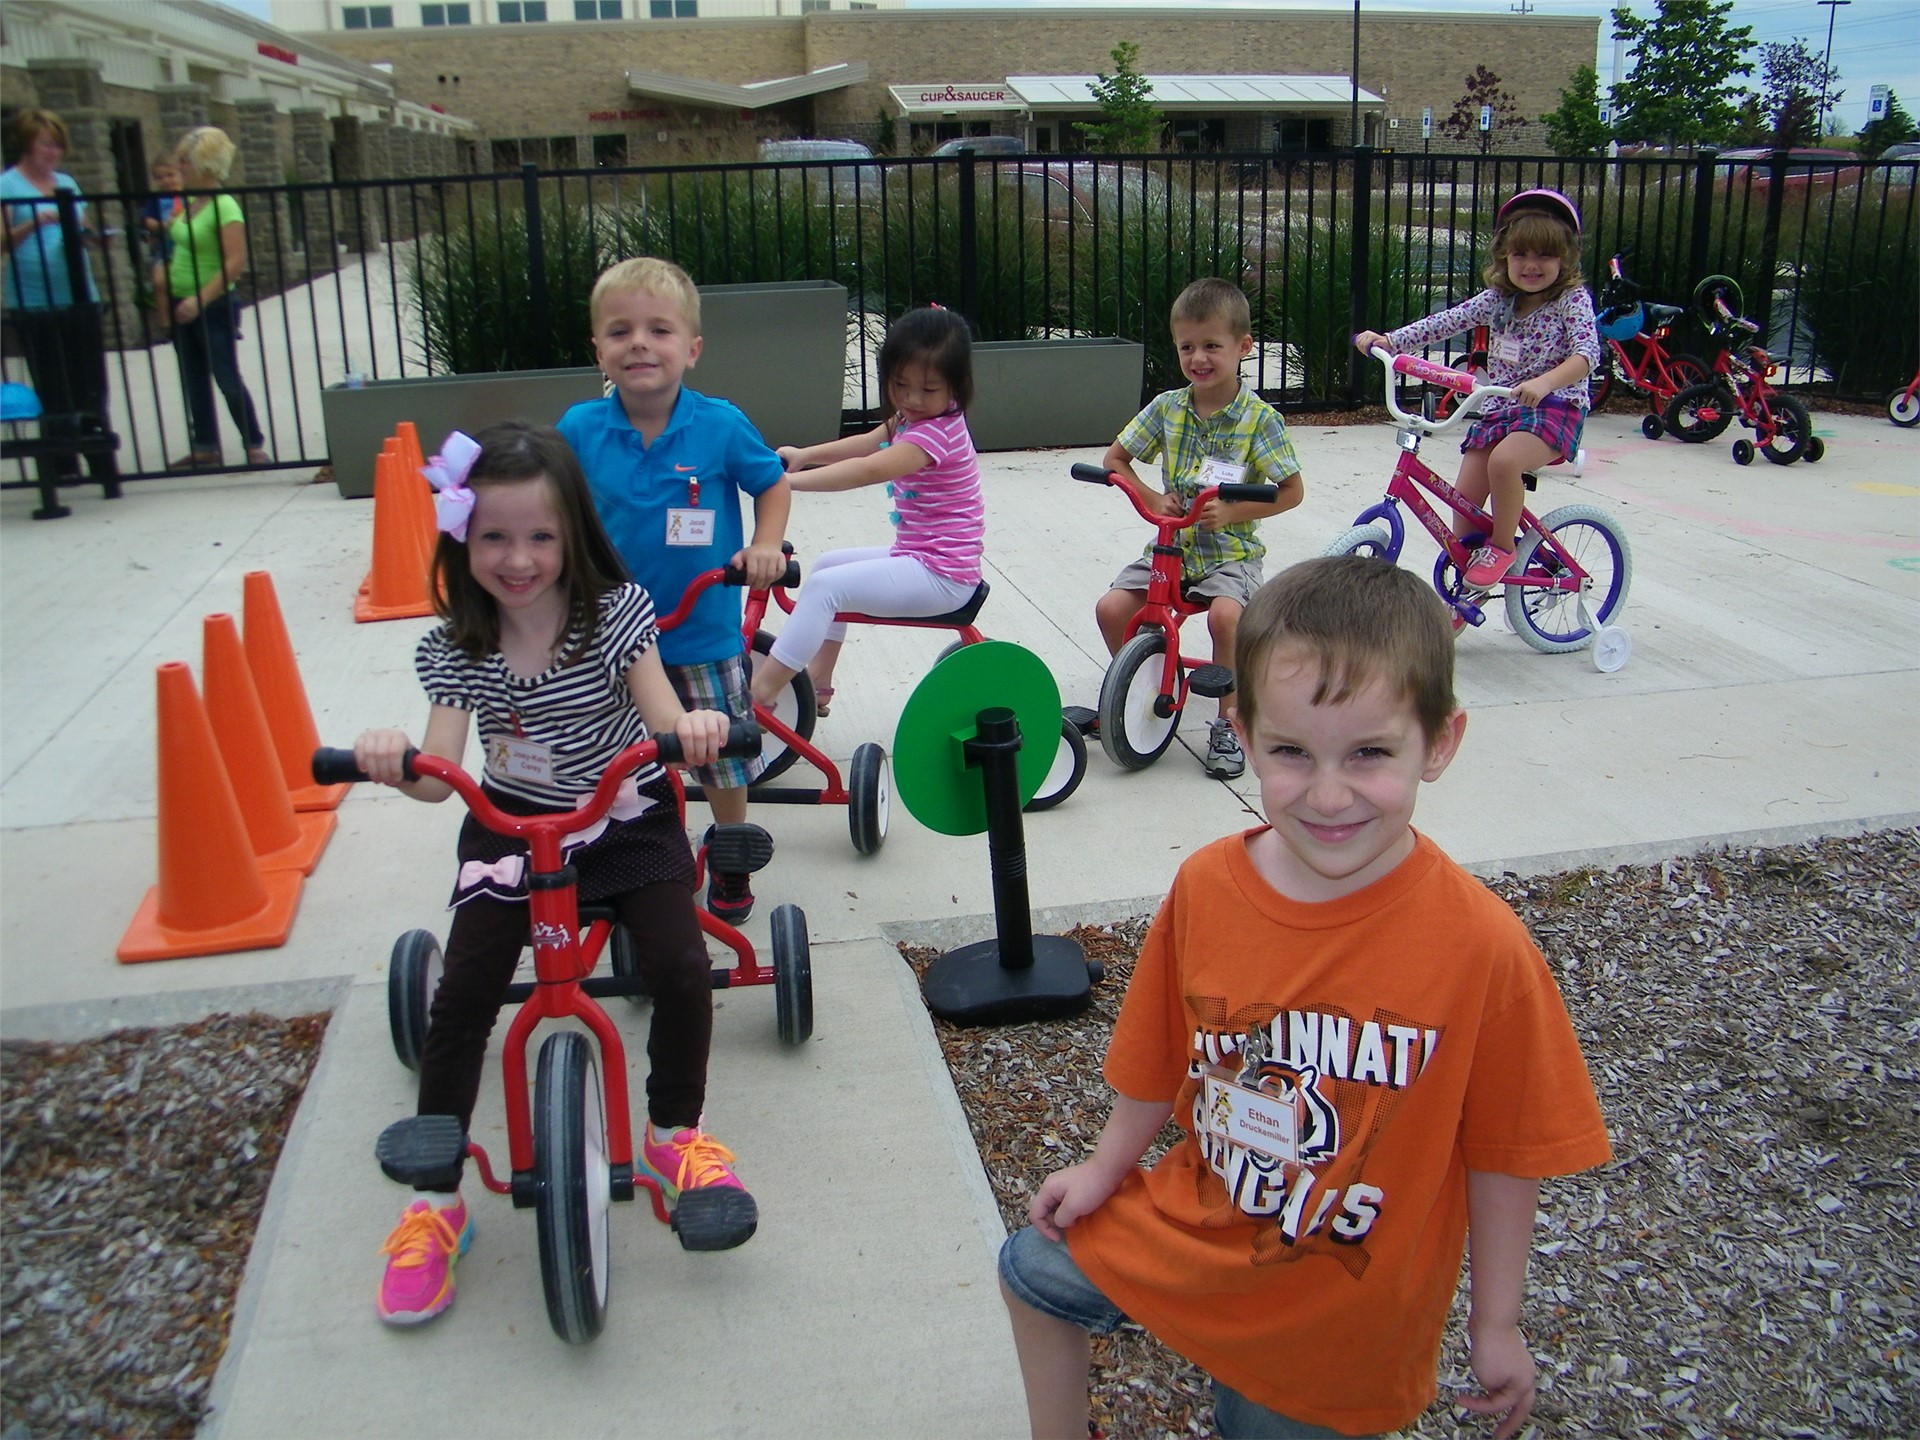 Preschoolers_riding_trikes_on_sidewalk